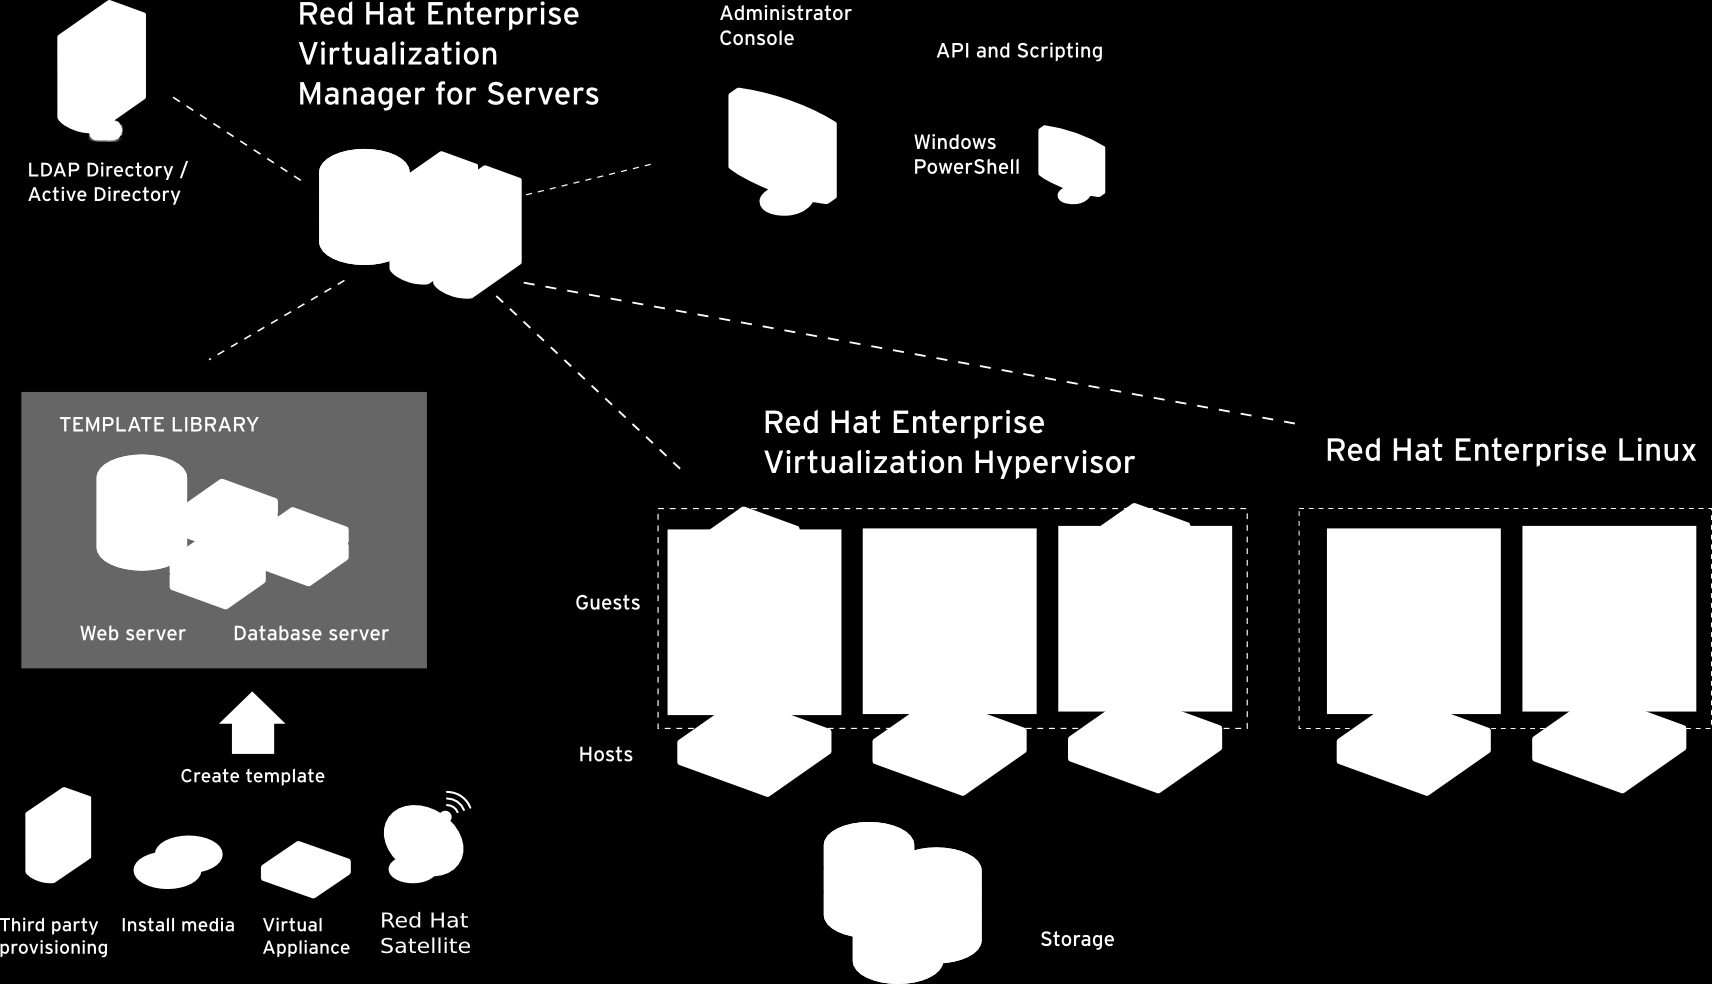 RED HAT ENTERPRISE VIRTUALIZATION Advanced KVM hypervisor technology and enterprise grade centralized